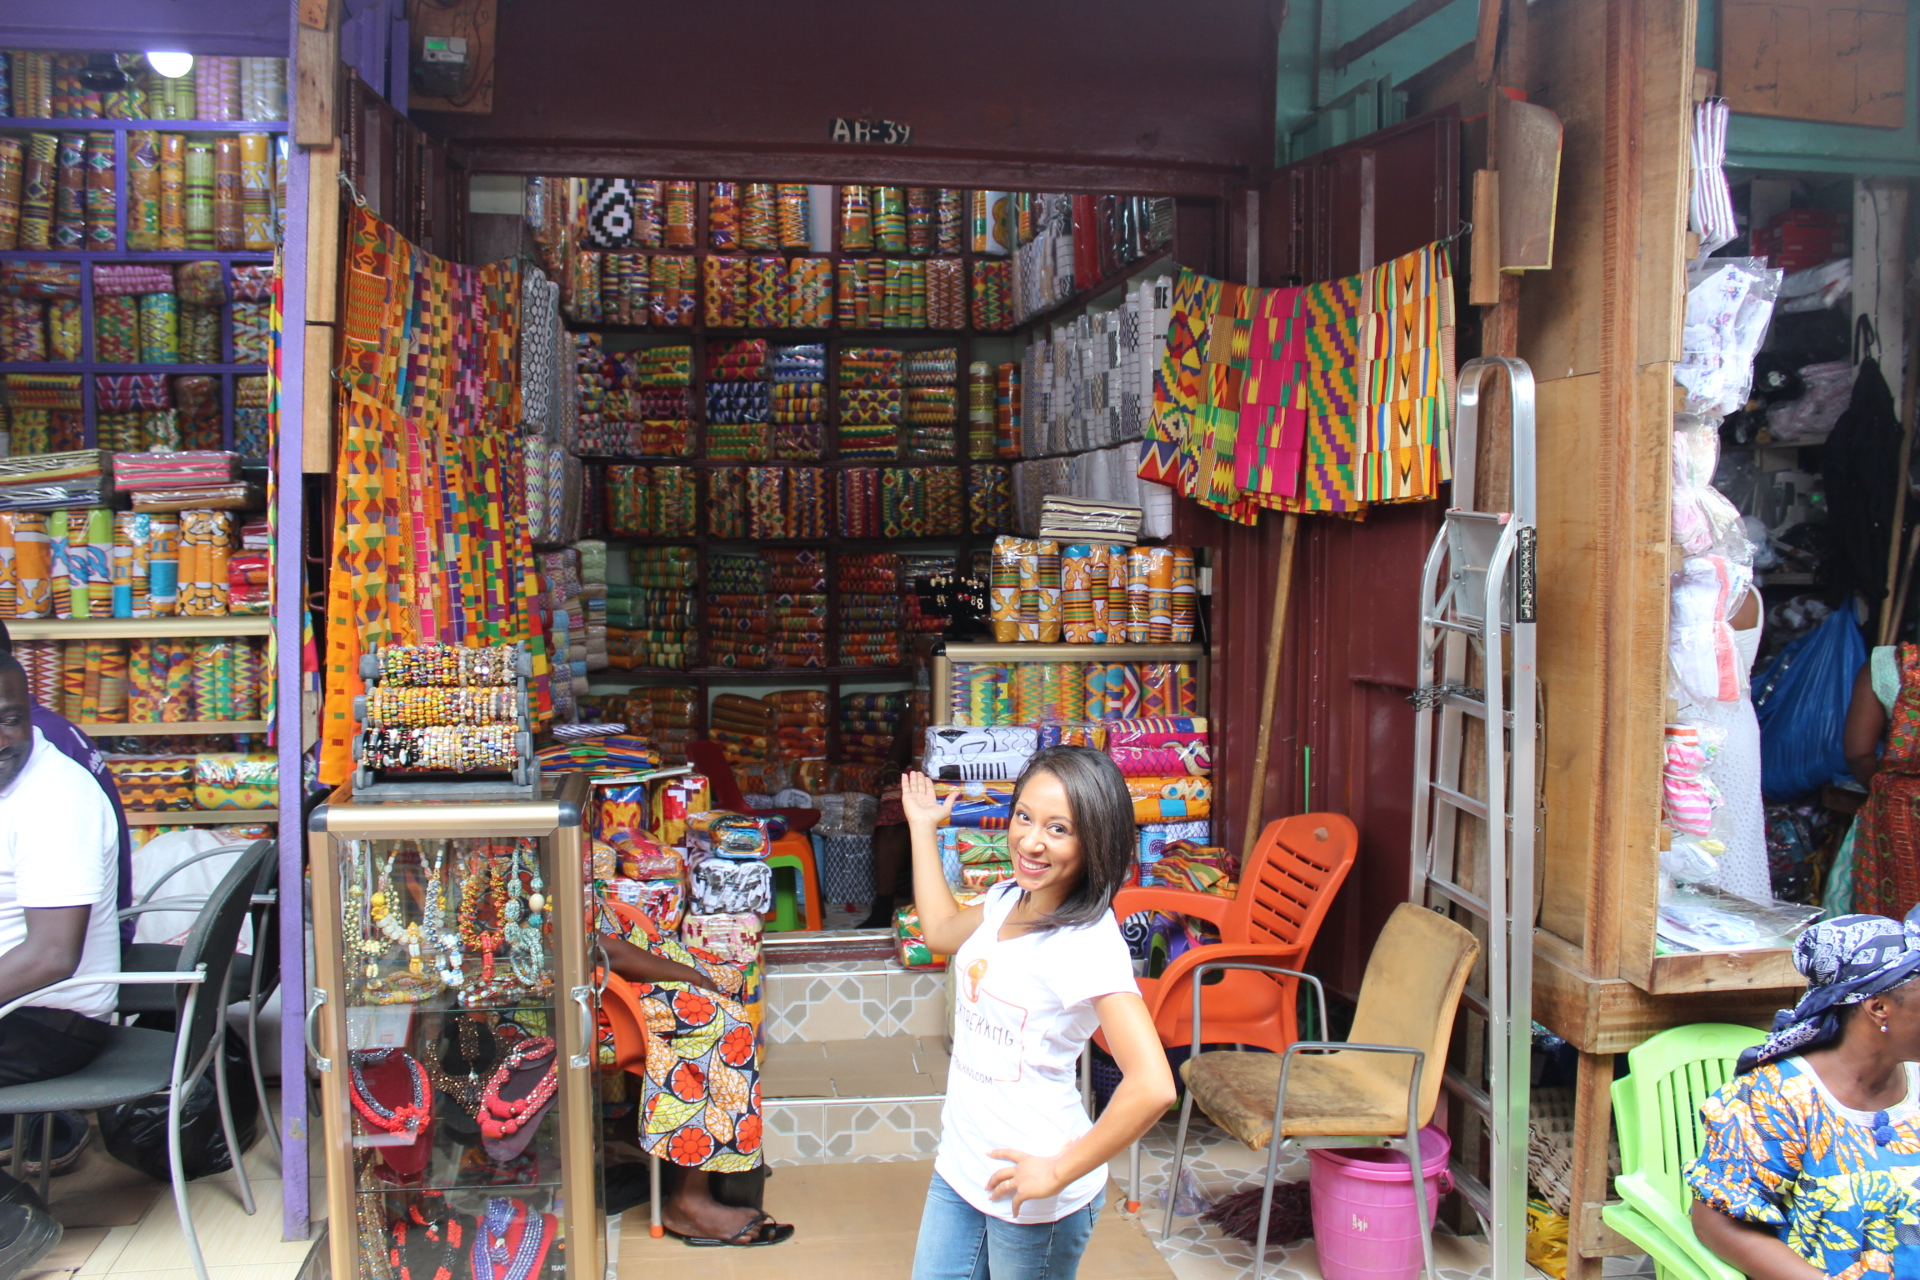 A typical Kente booth in the market